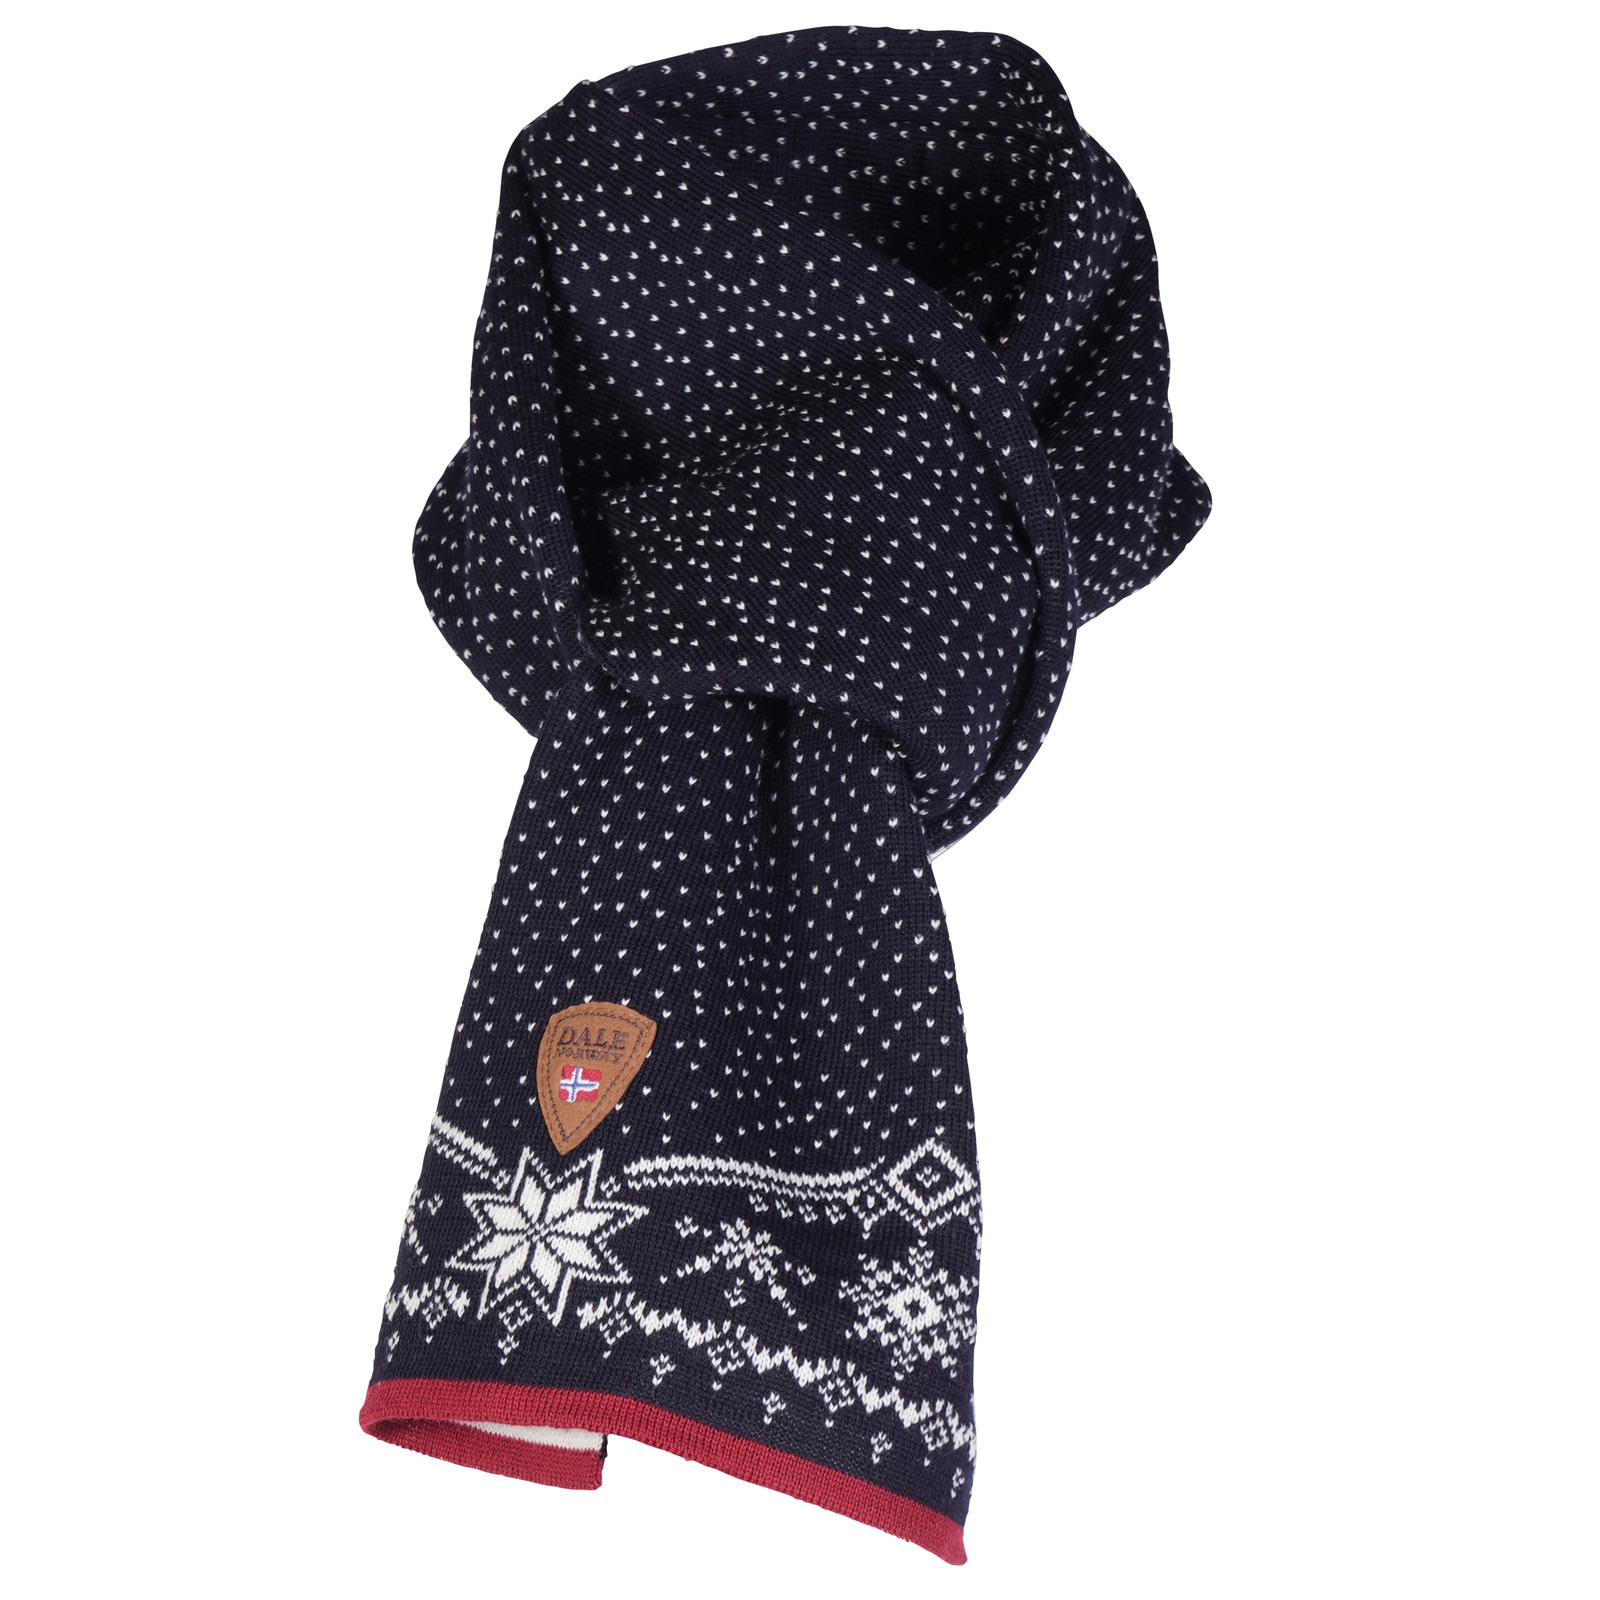 Dale of Norway Dale Christmas Scarf - Navy/Off White/Raspberry, 11711-C